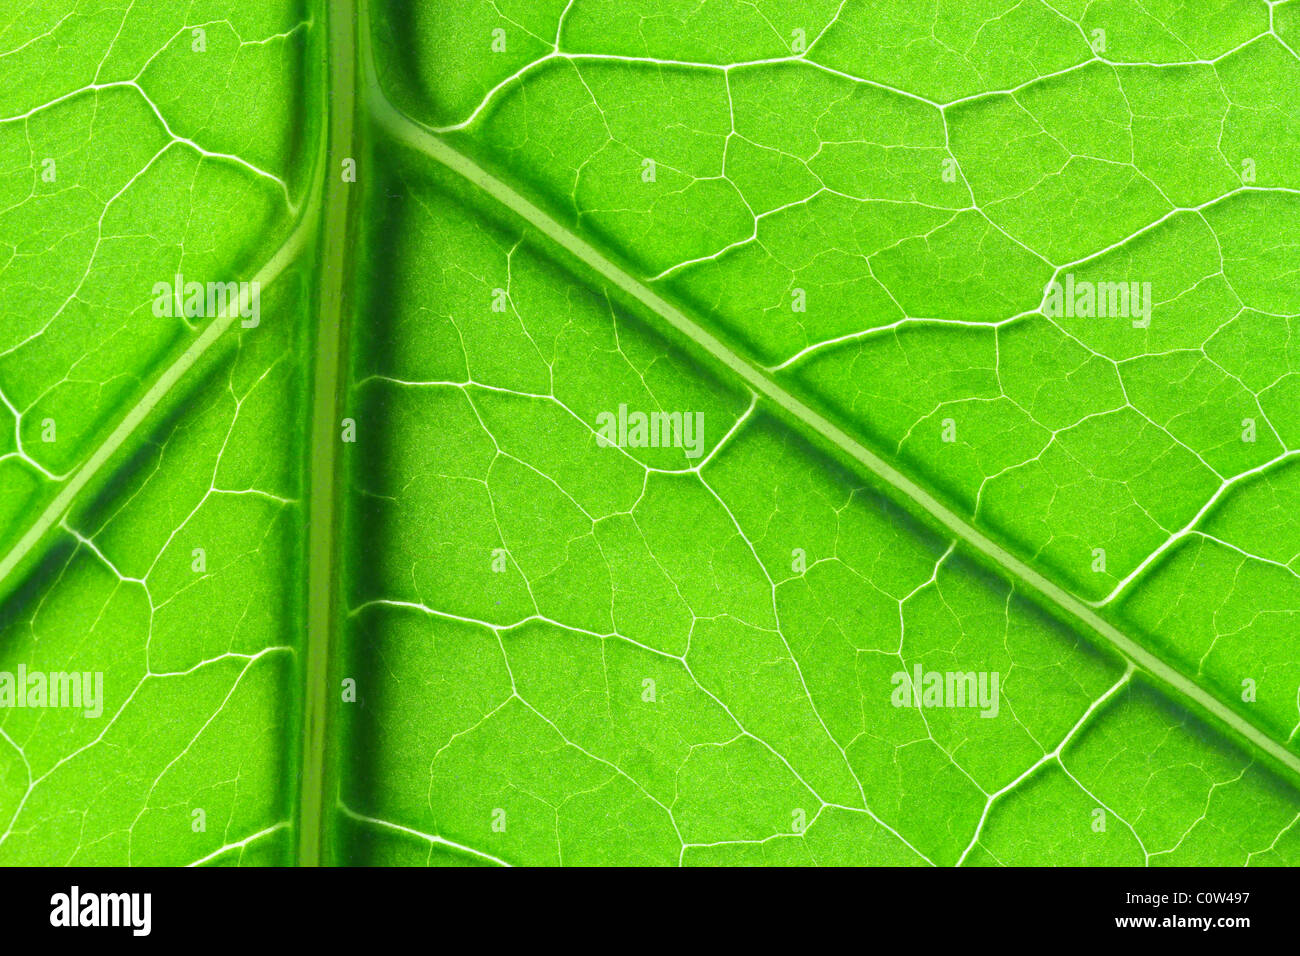 Green leaf background showing vein structure - Stock Image